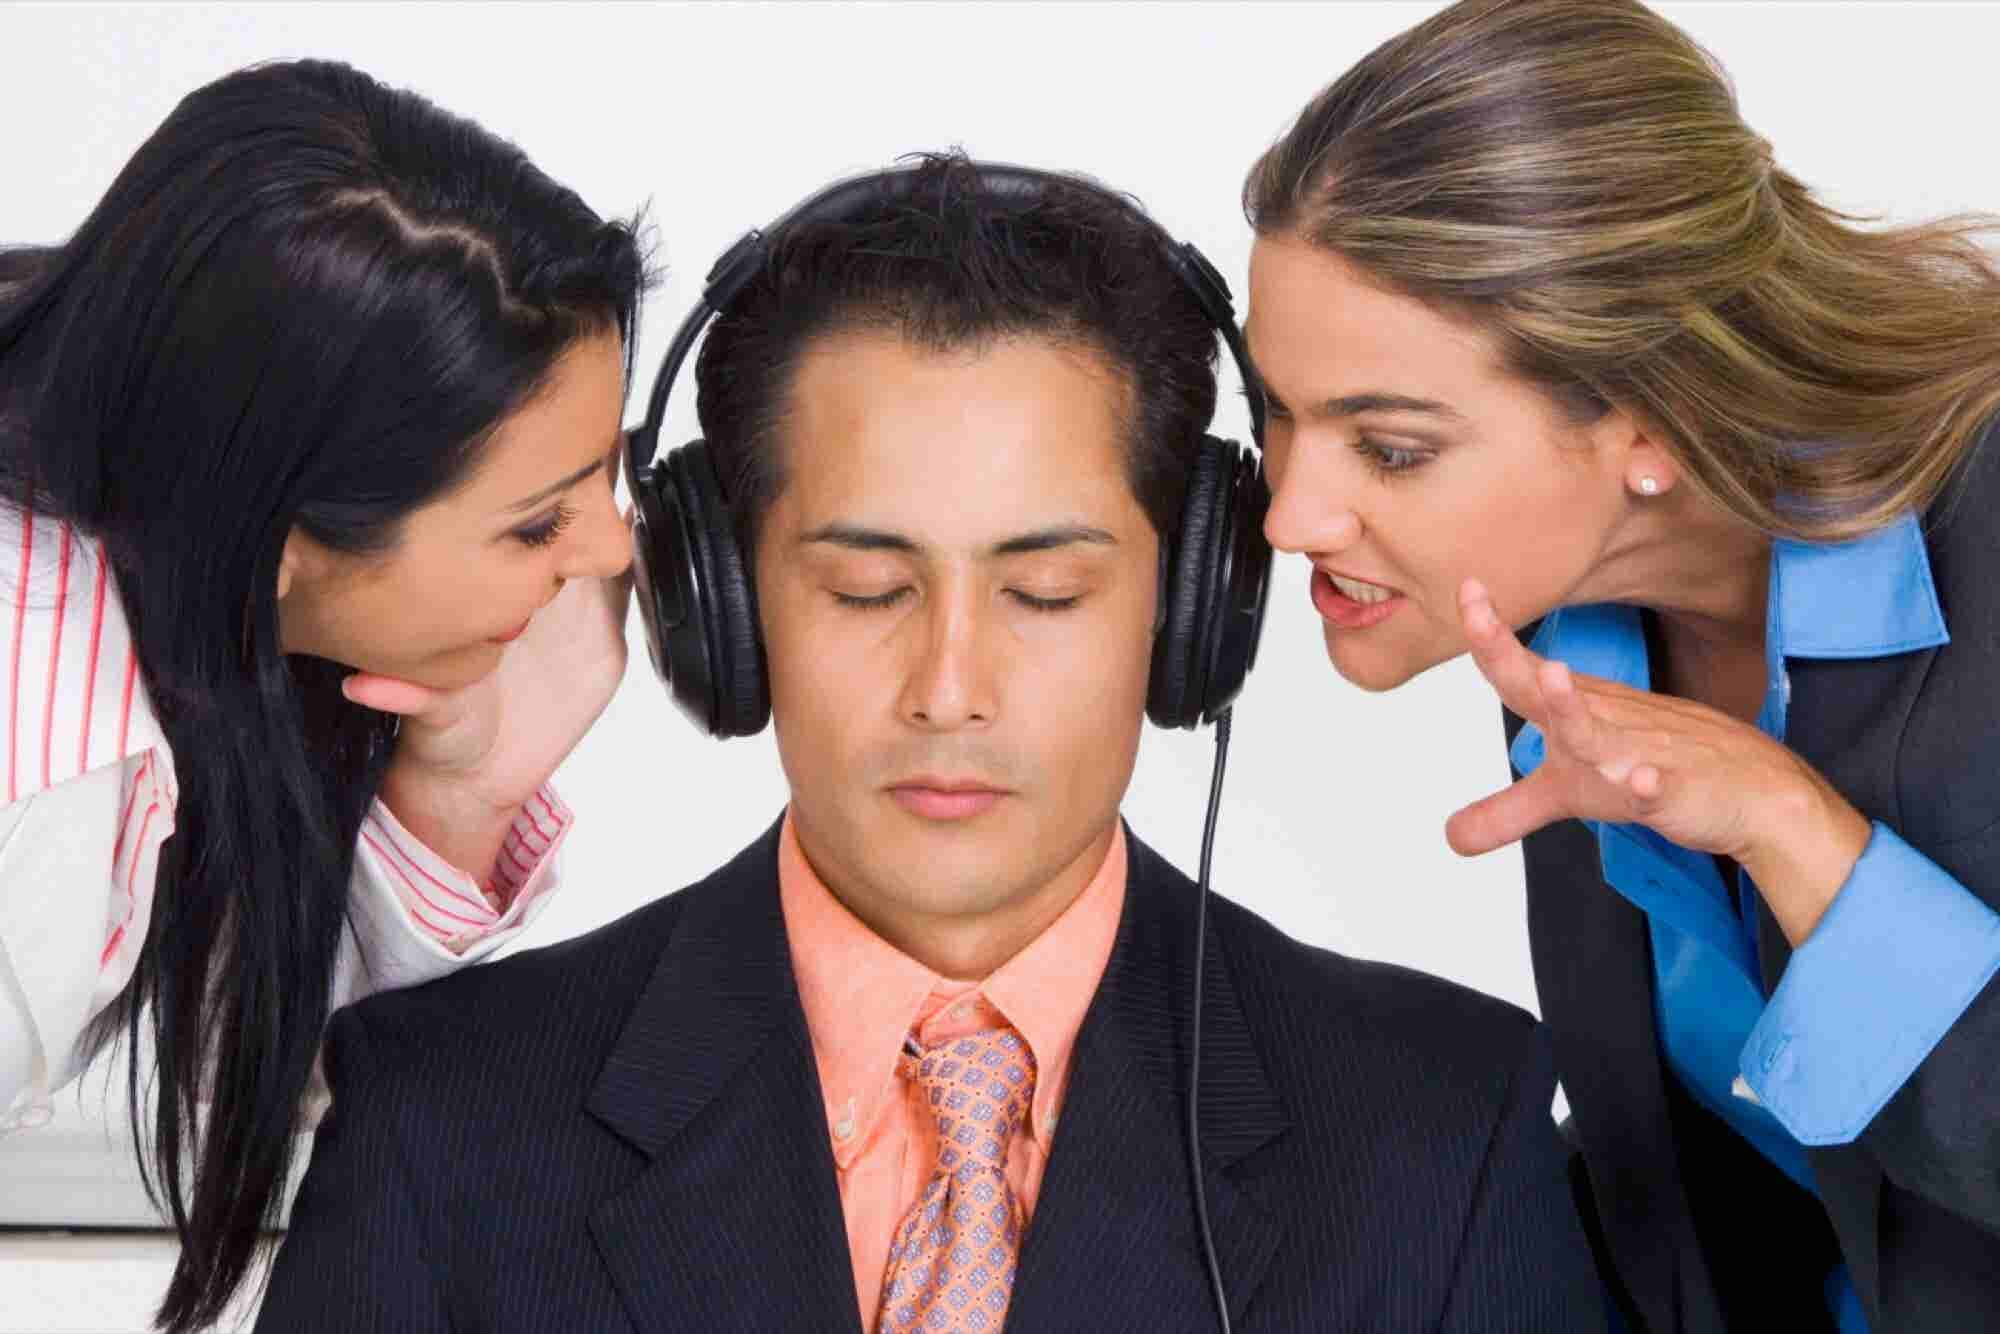 11 Rebellious and Fun Songs For When You Hate Your Job